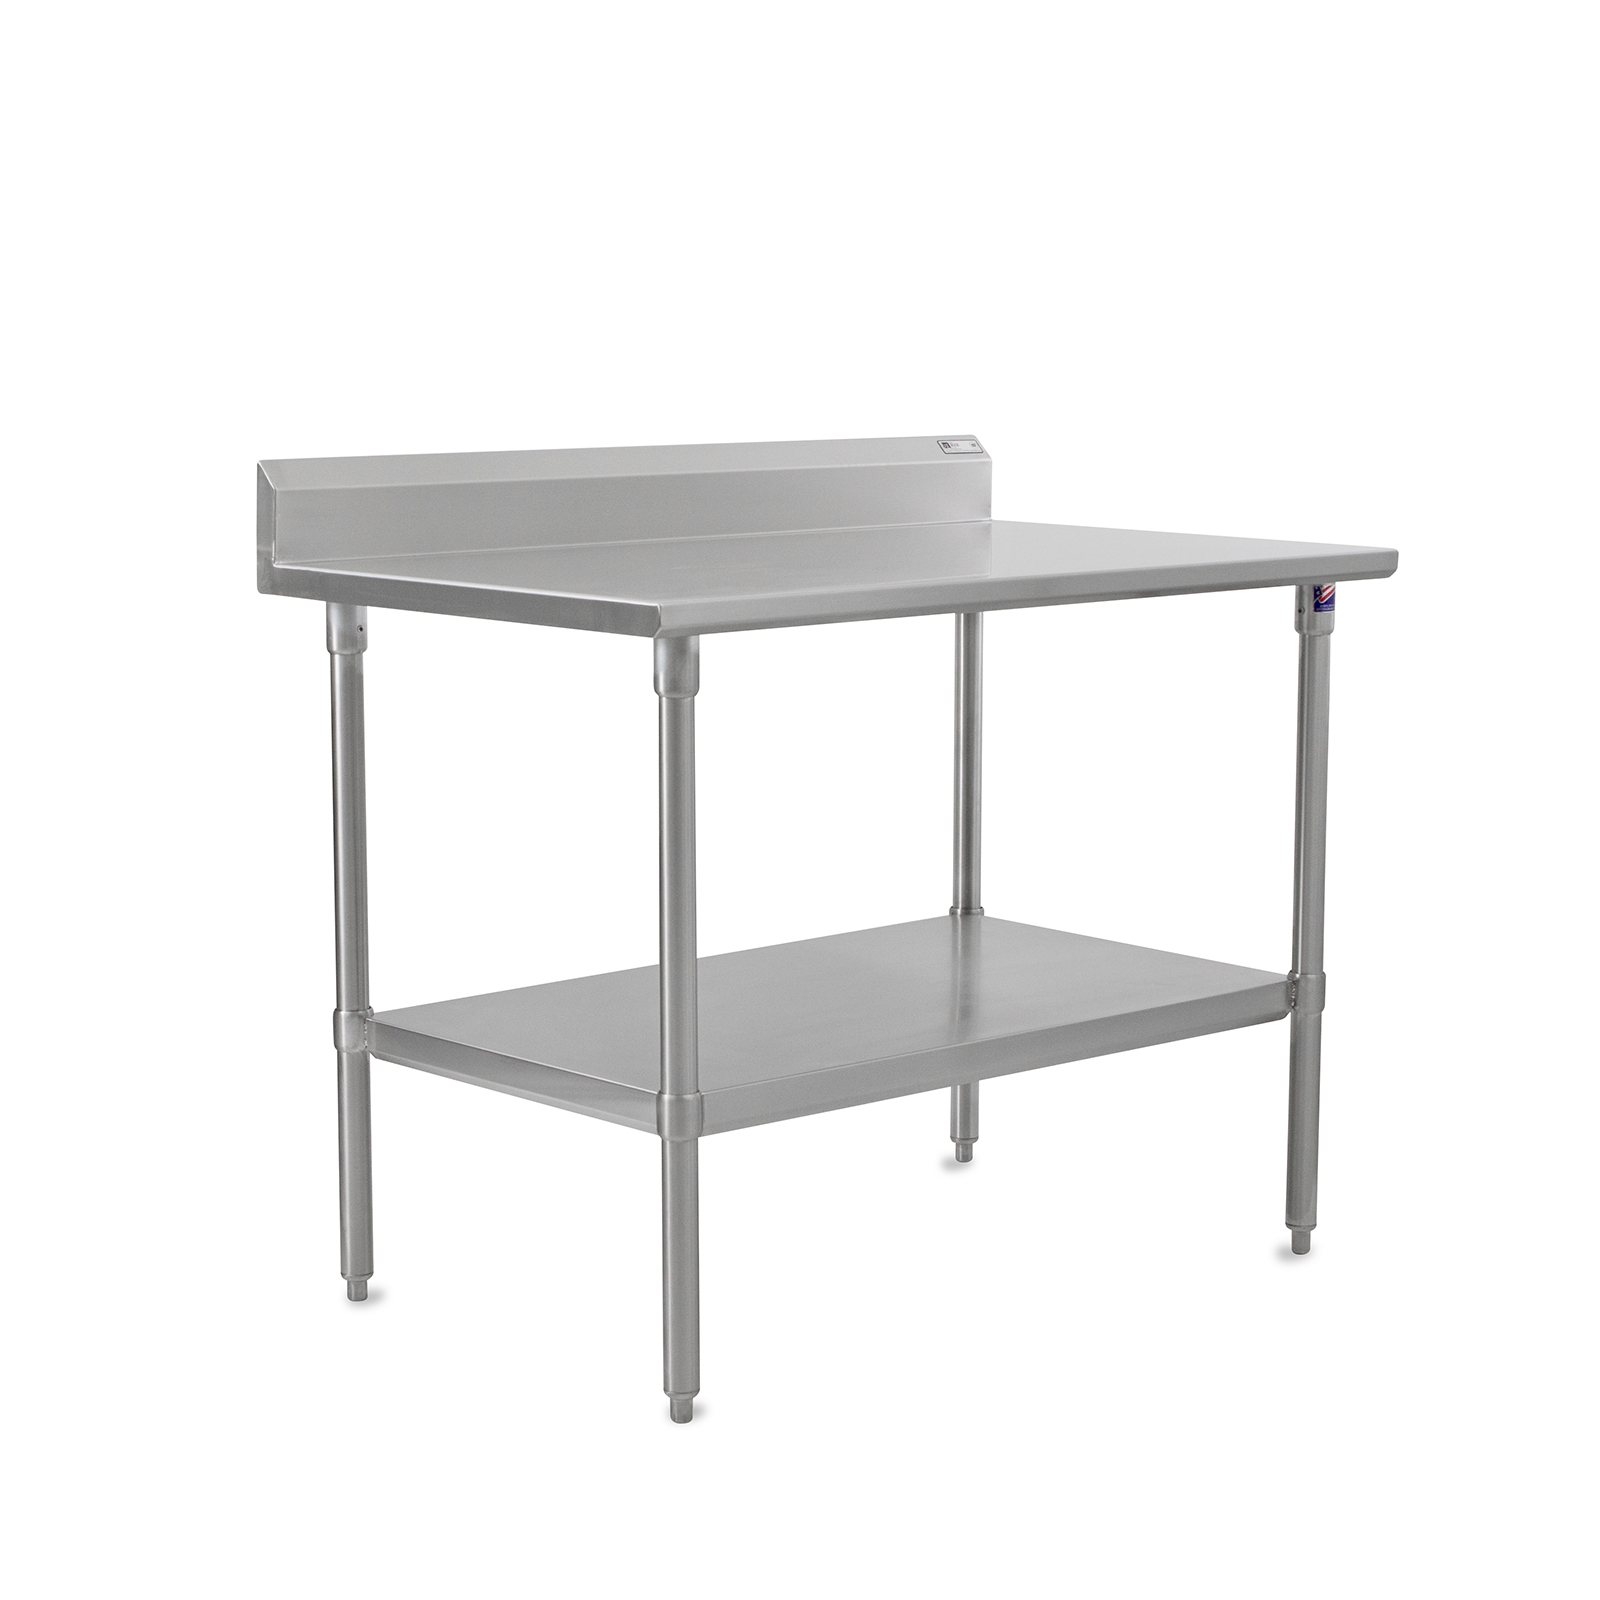 John Boos ST6R5-2472GSK work table,  63